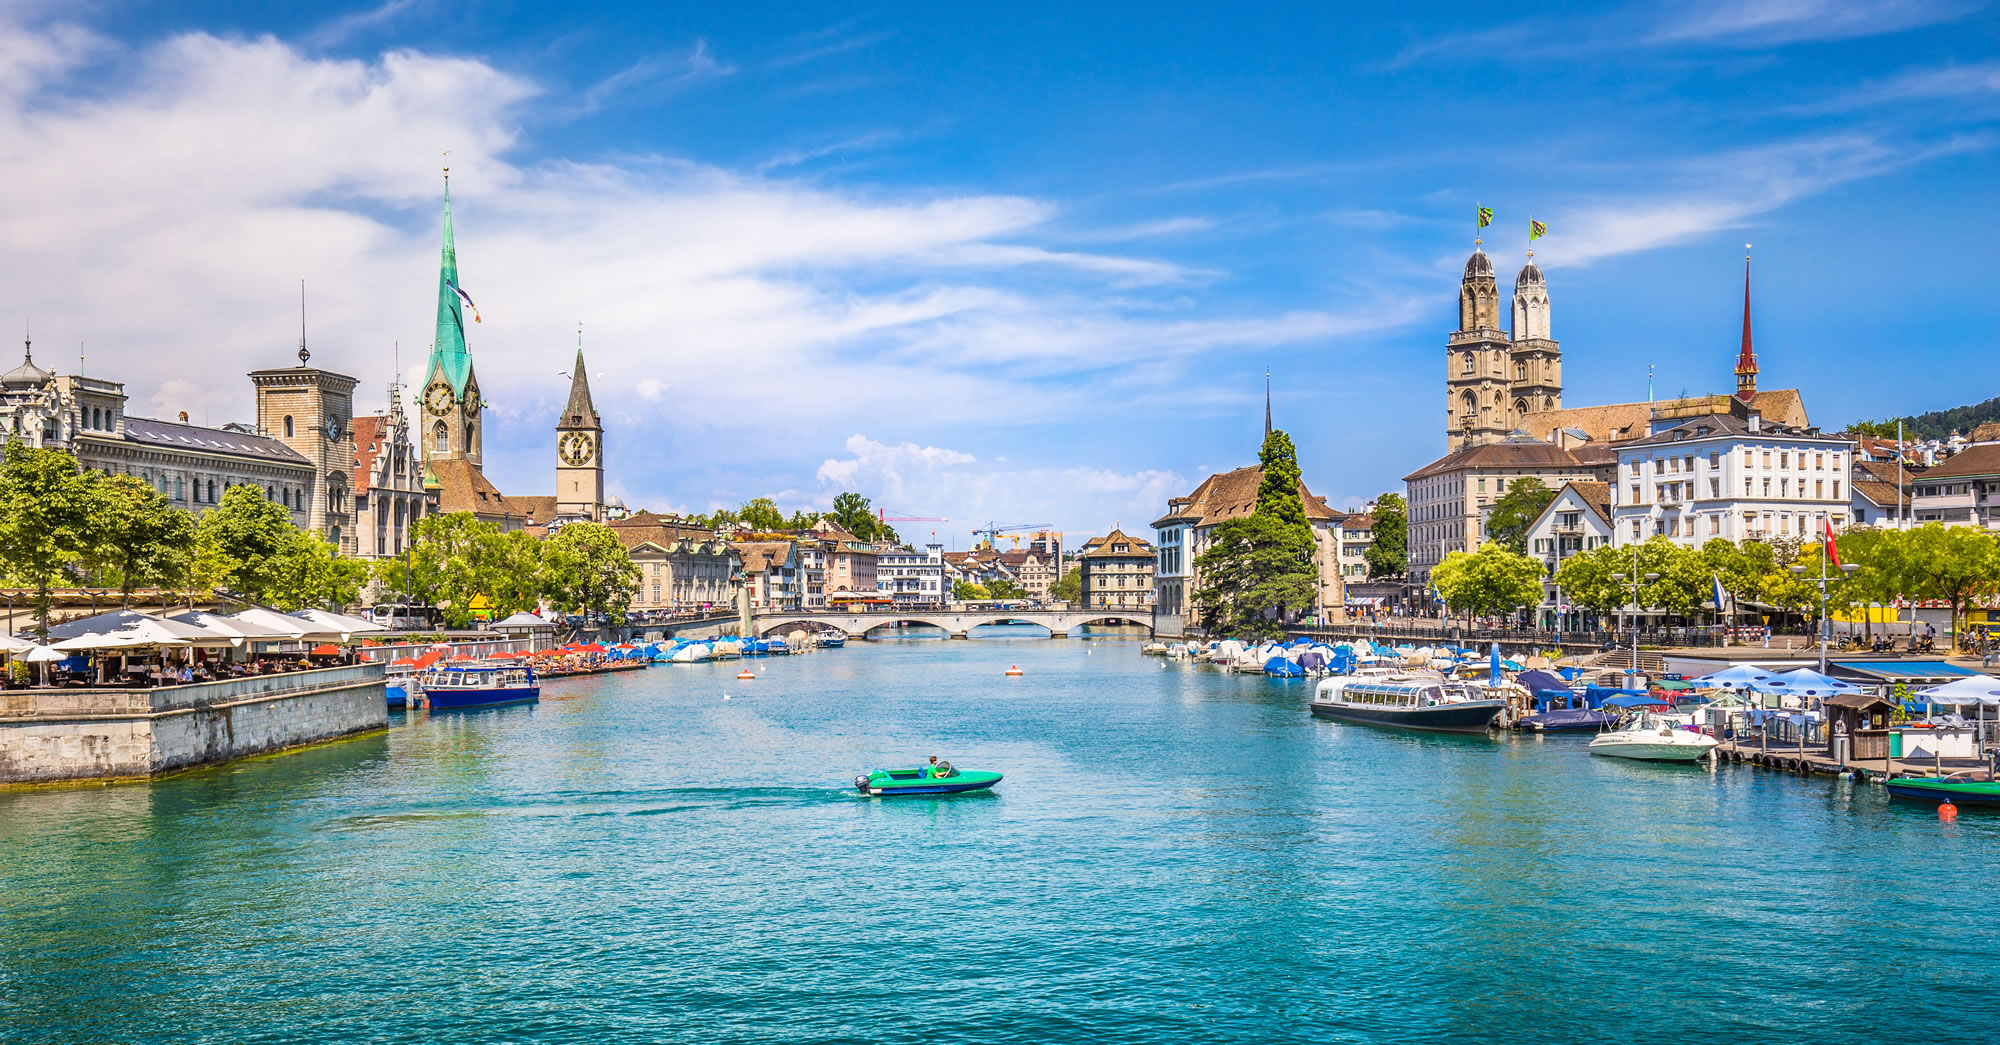 Grossmunster Churches and River Limmat, Zurich